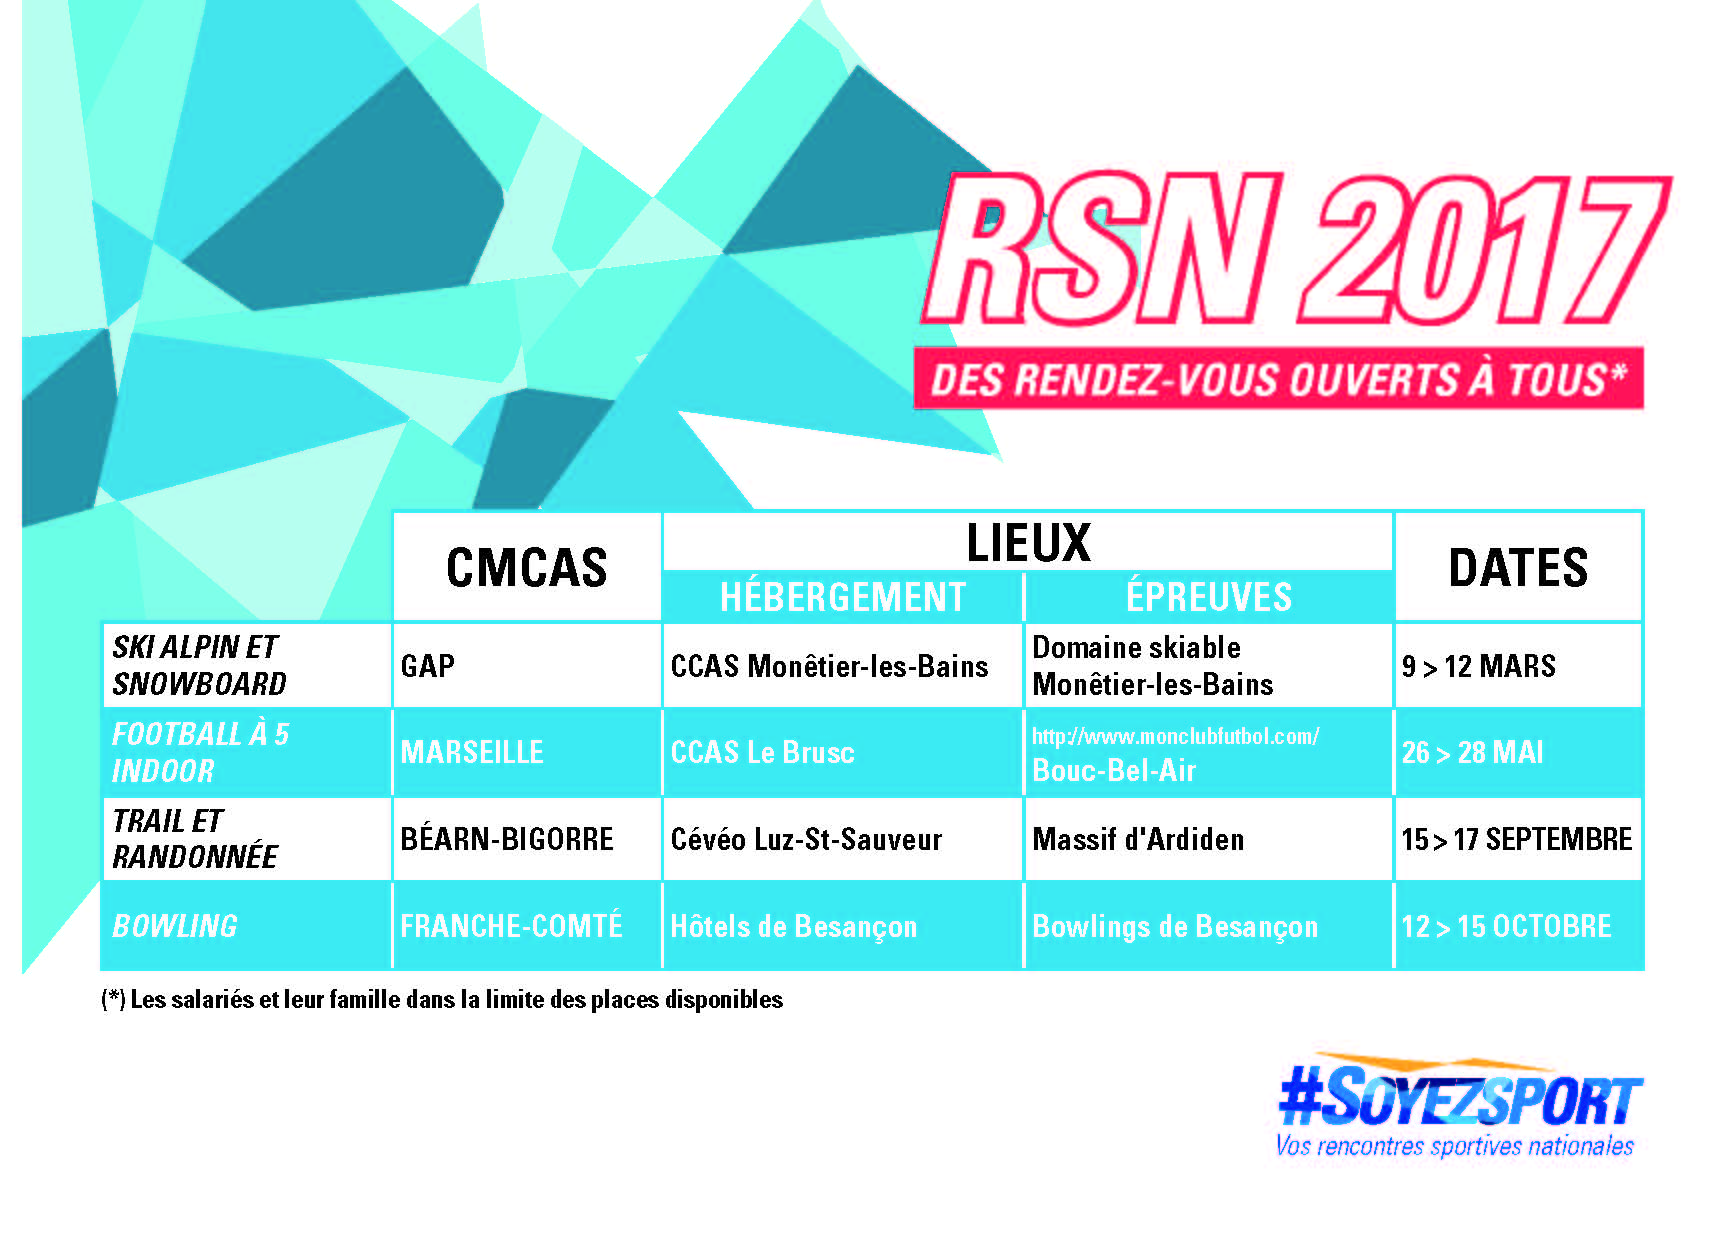 Rencontres sportives nationales ccas